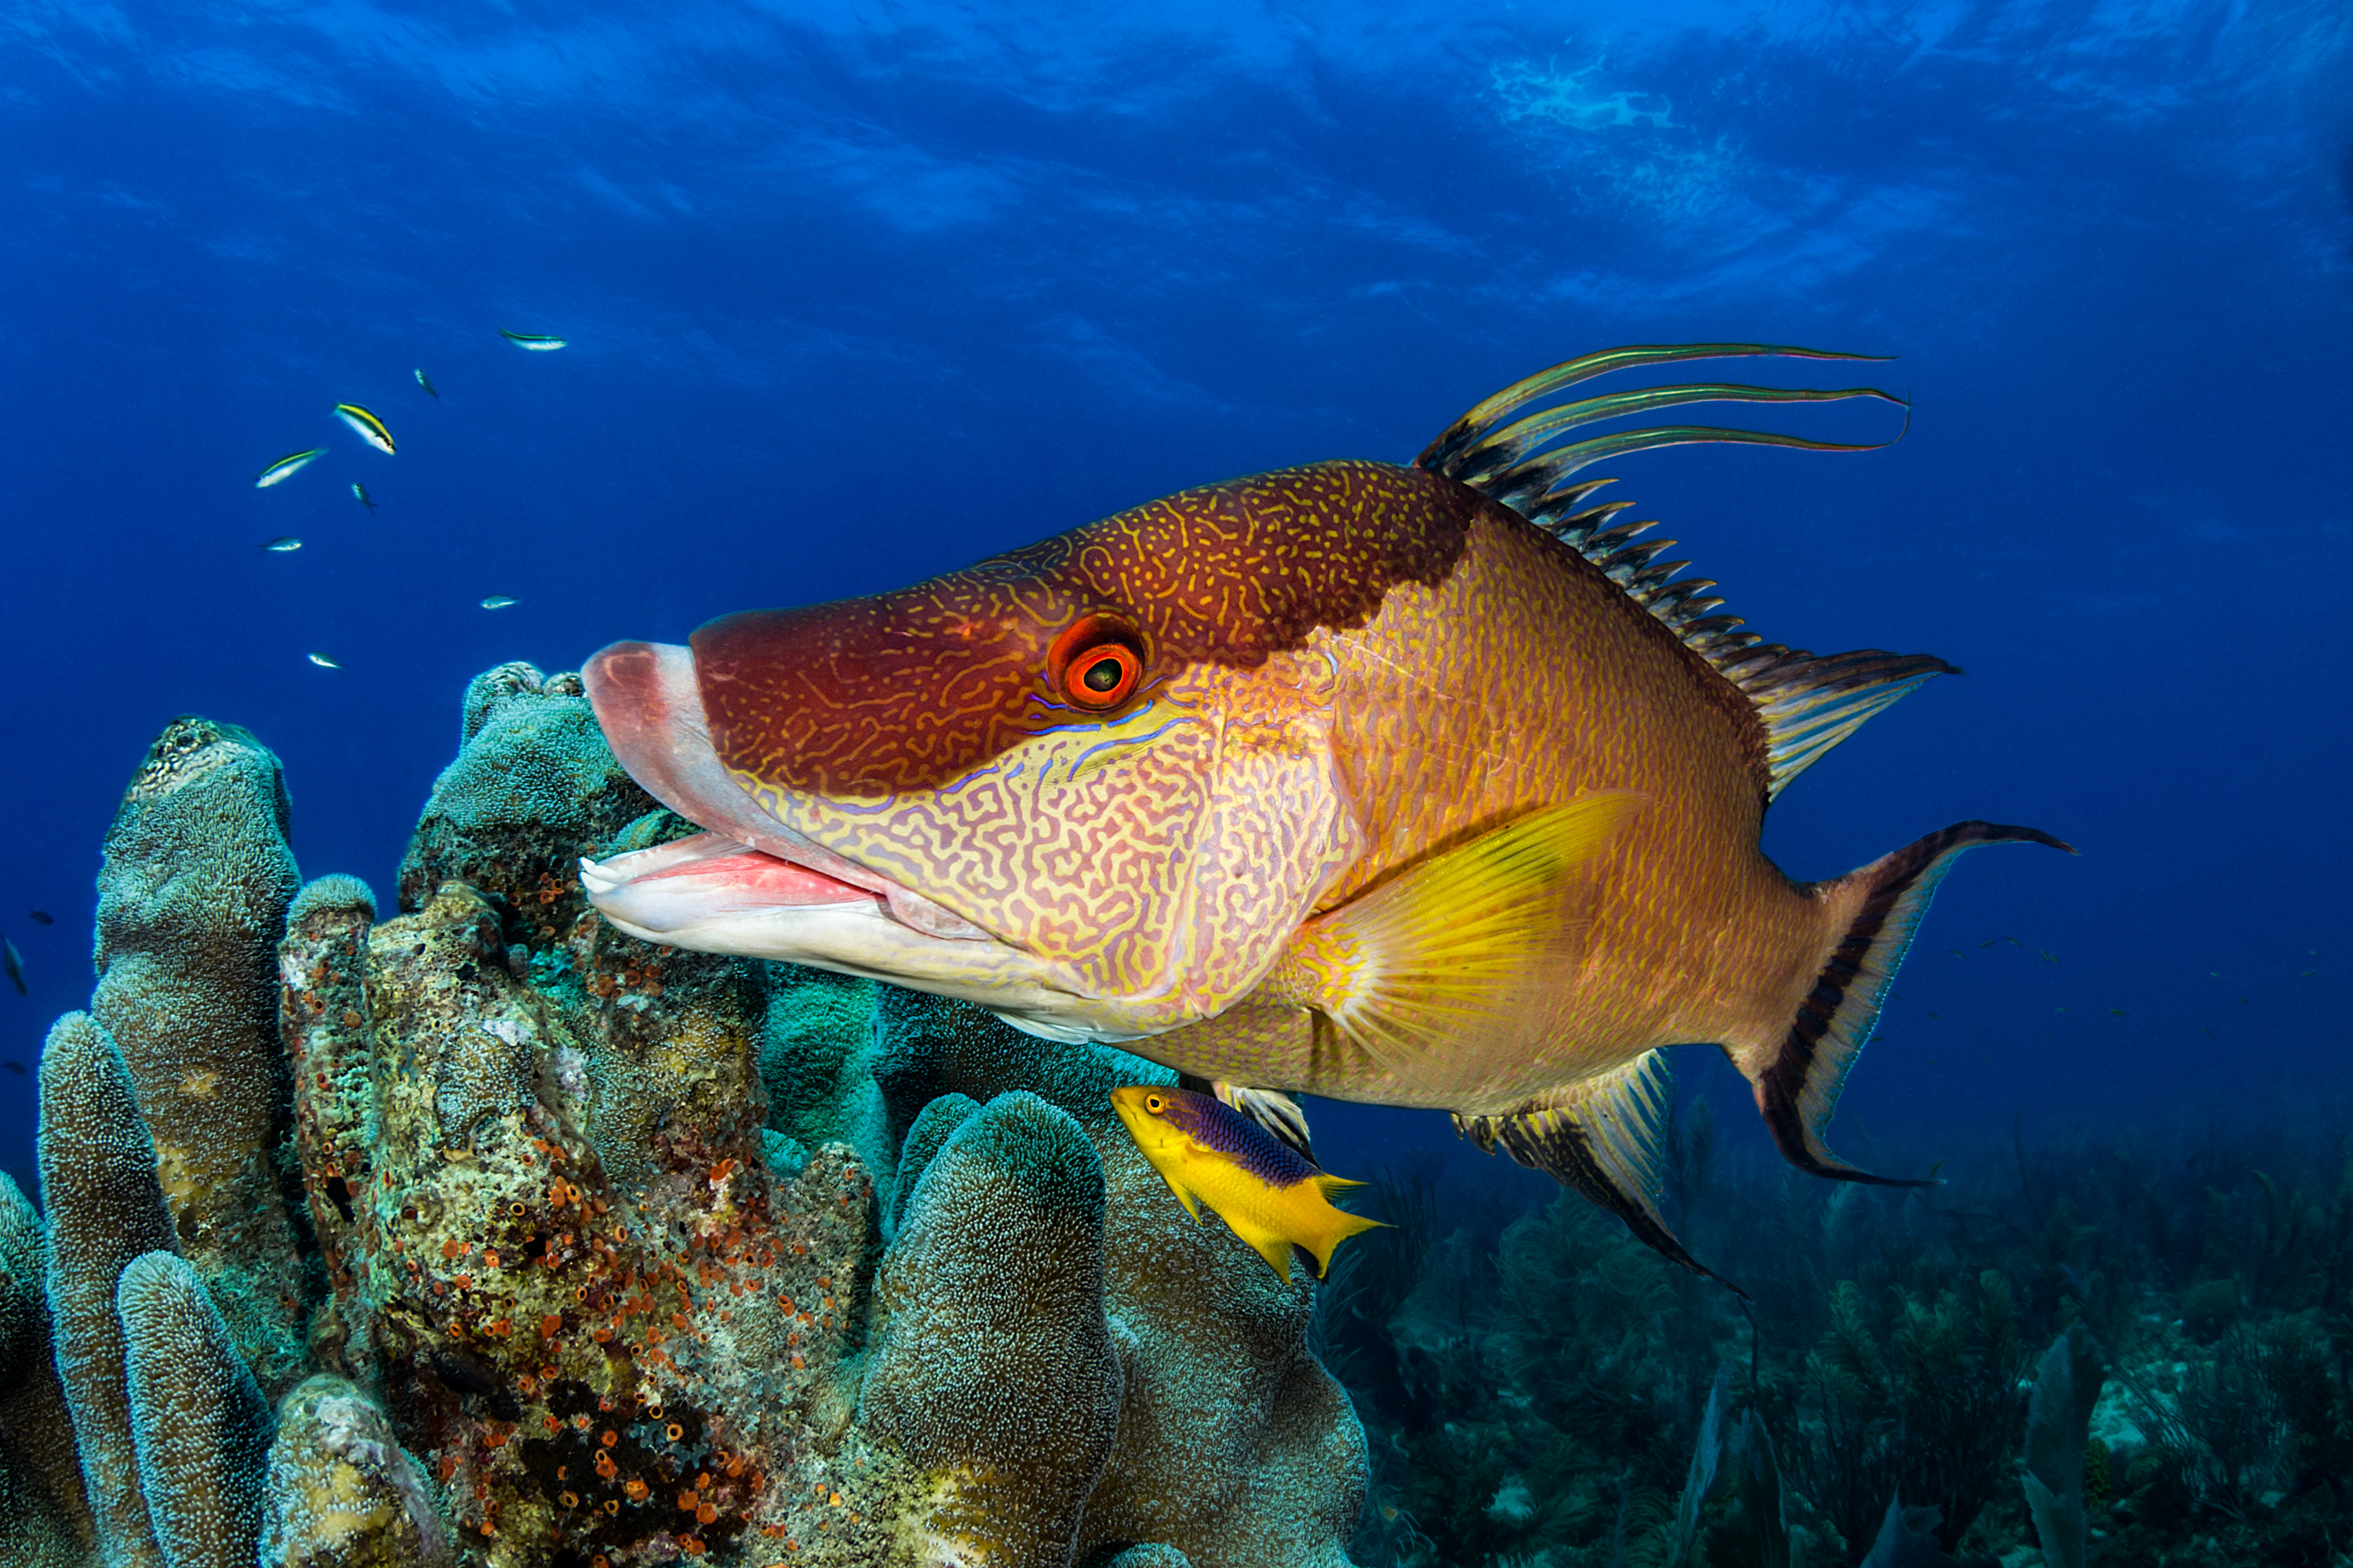 Hogfish in the coral reef